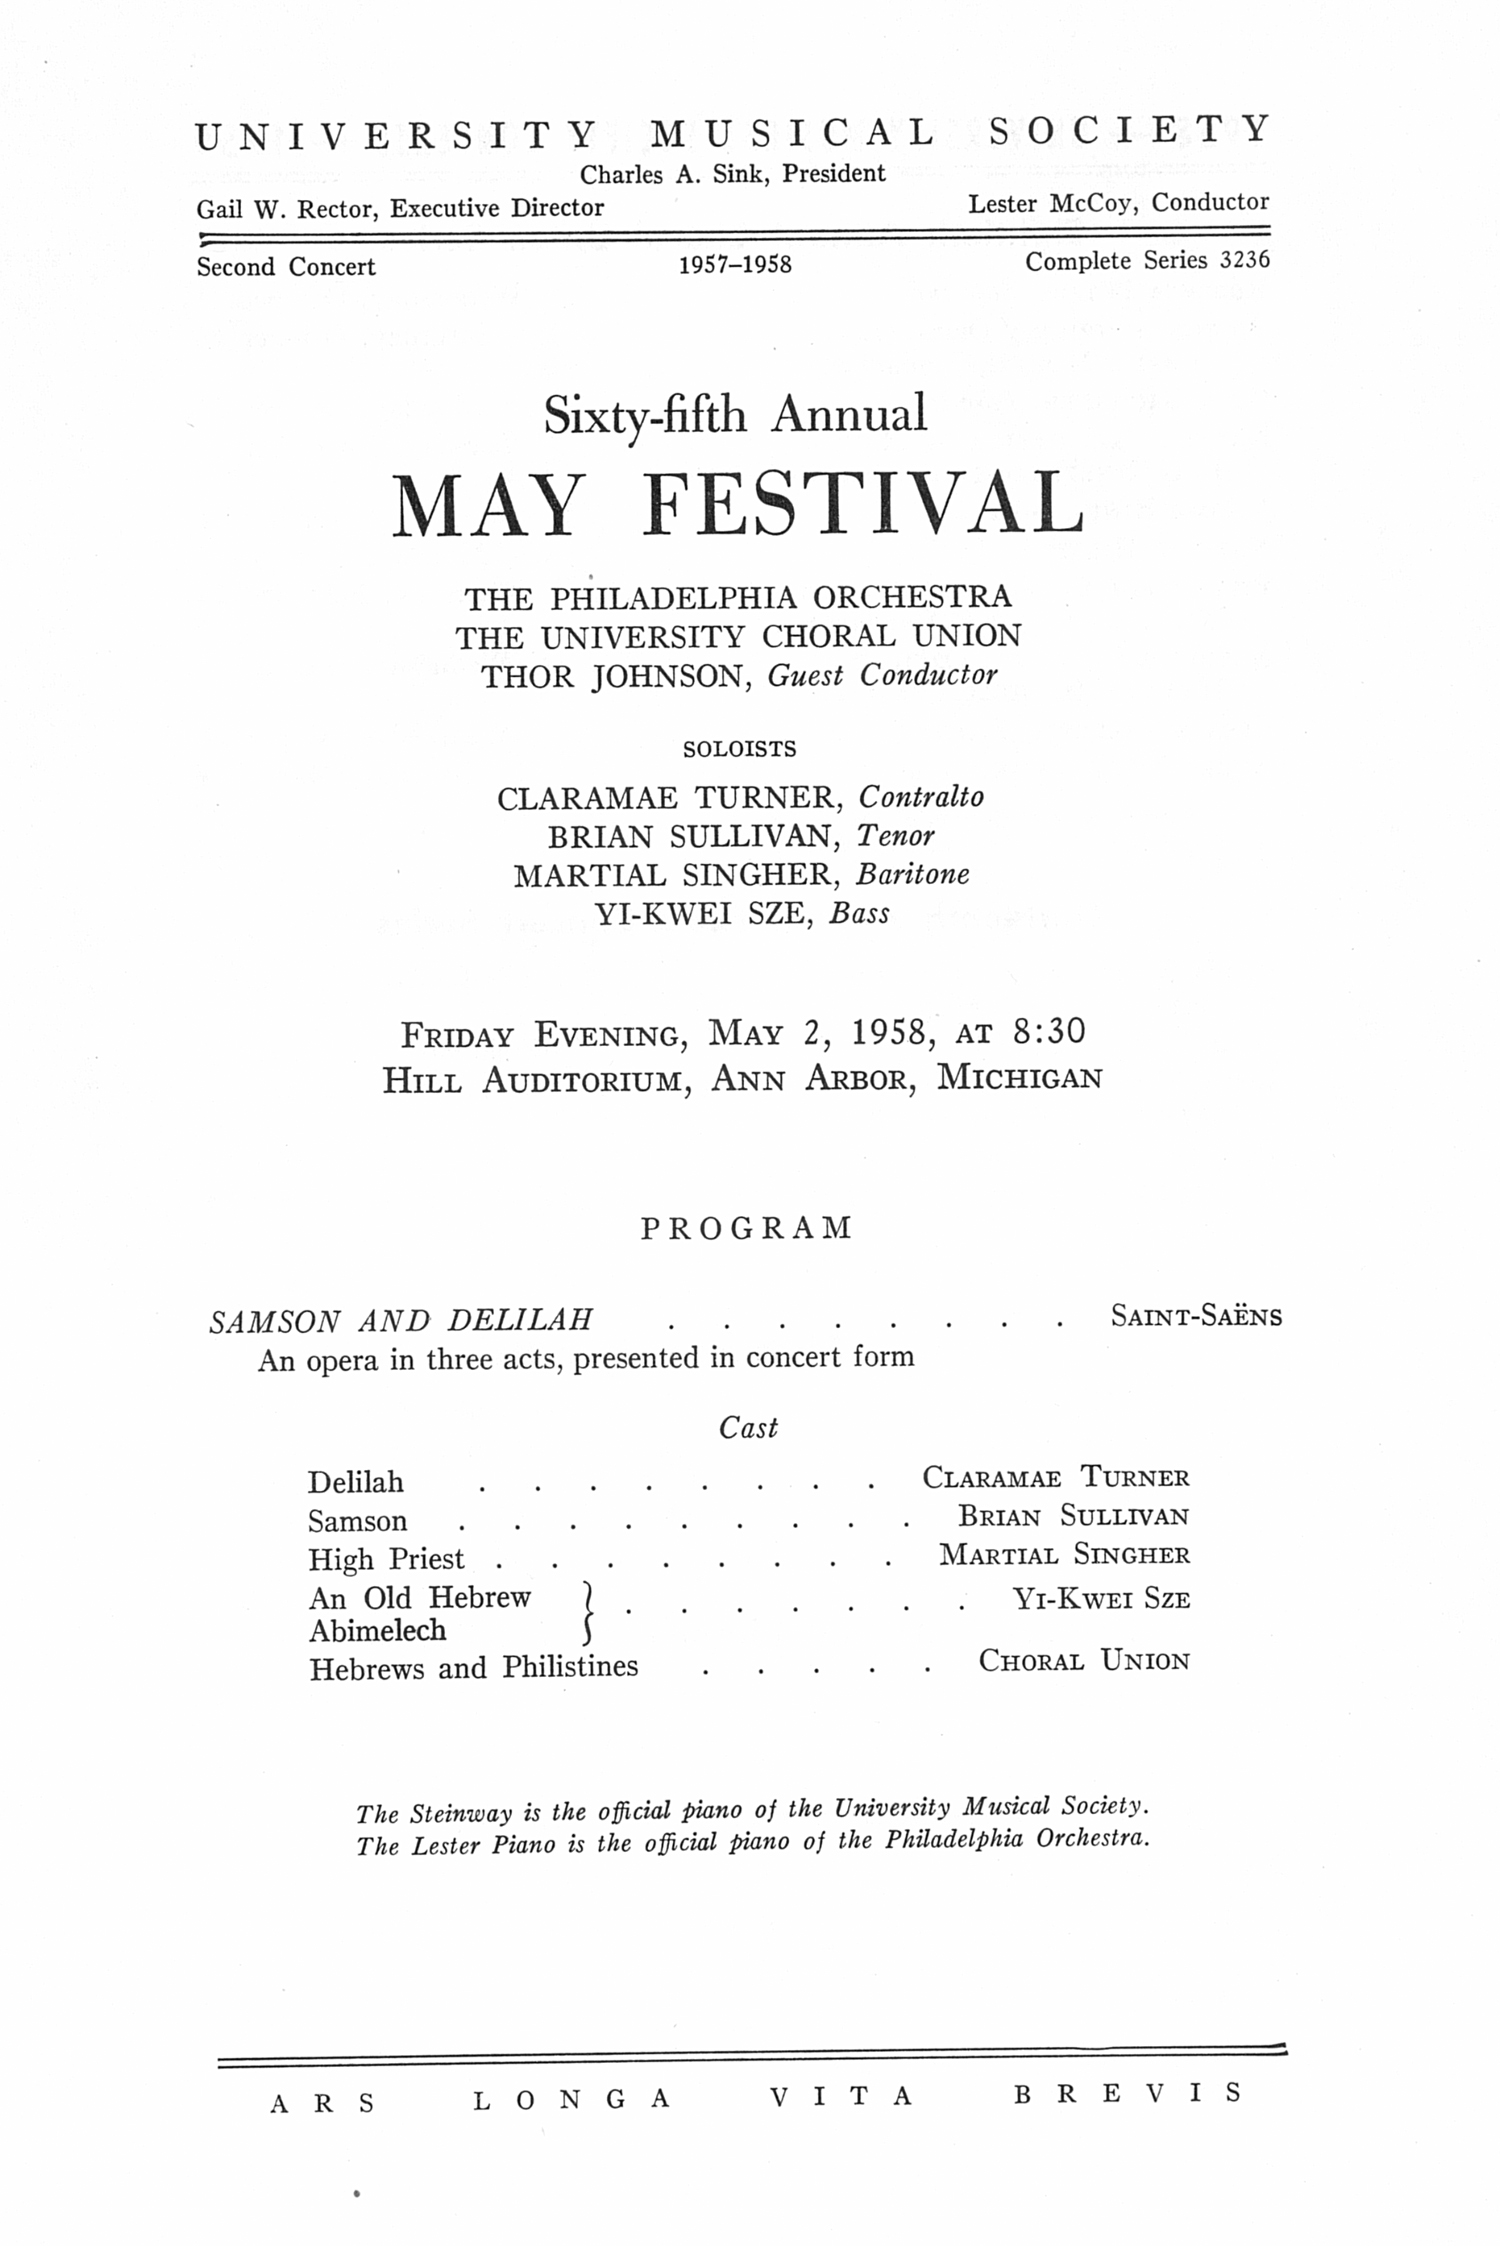 UMS Concert Program, May 2, 1958: Sixty-fifth Annual May Festival -- The Philadelphia Orchestra image